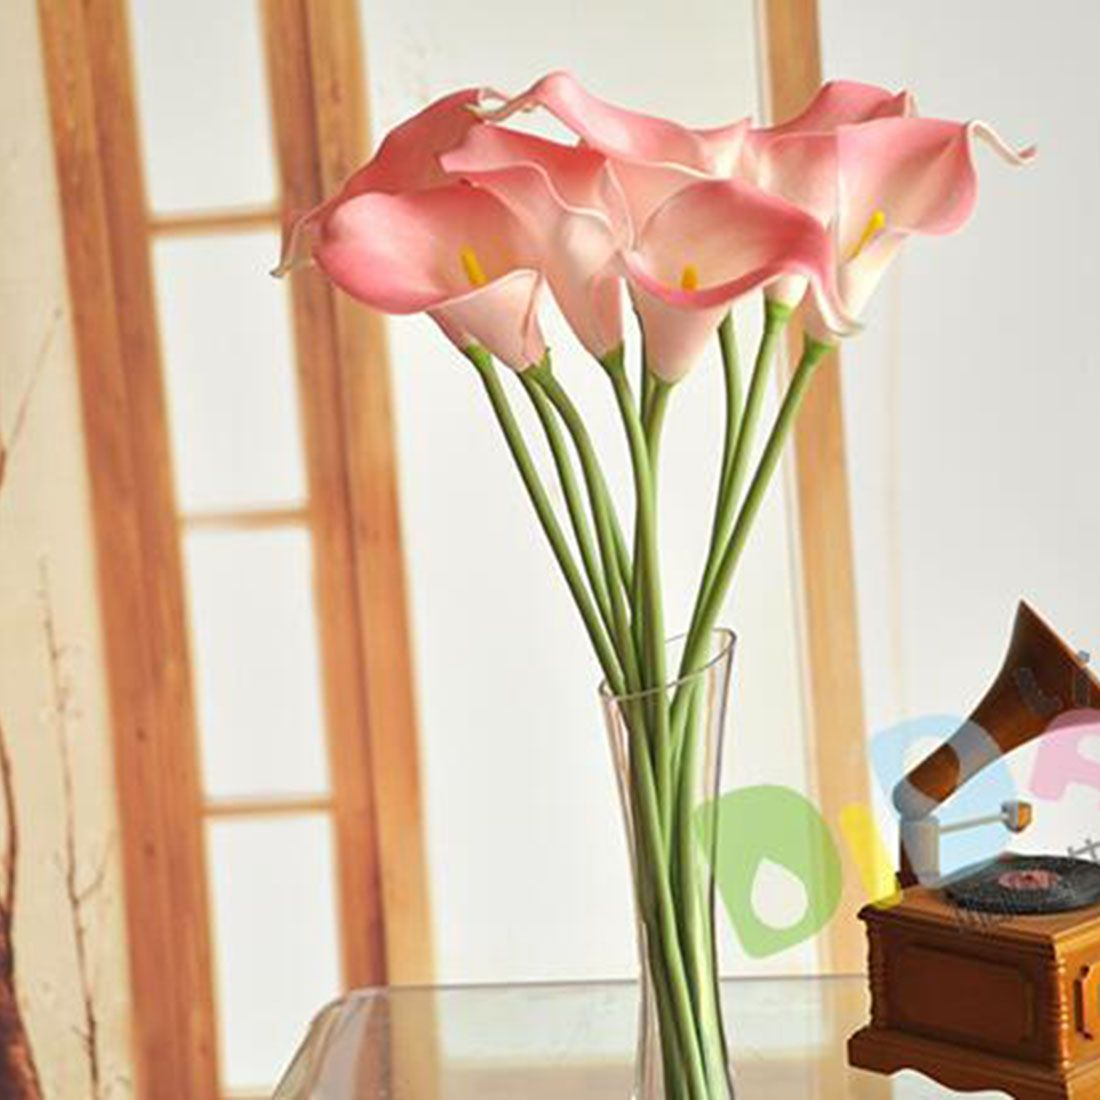 Wedding decoration ideas for home  Handmade DIY Colorful Artificial Calla Lily Flowers Fake Flower Home